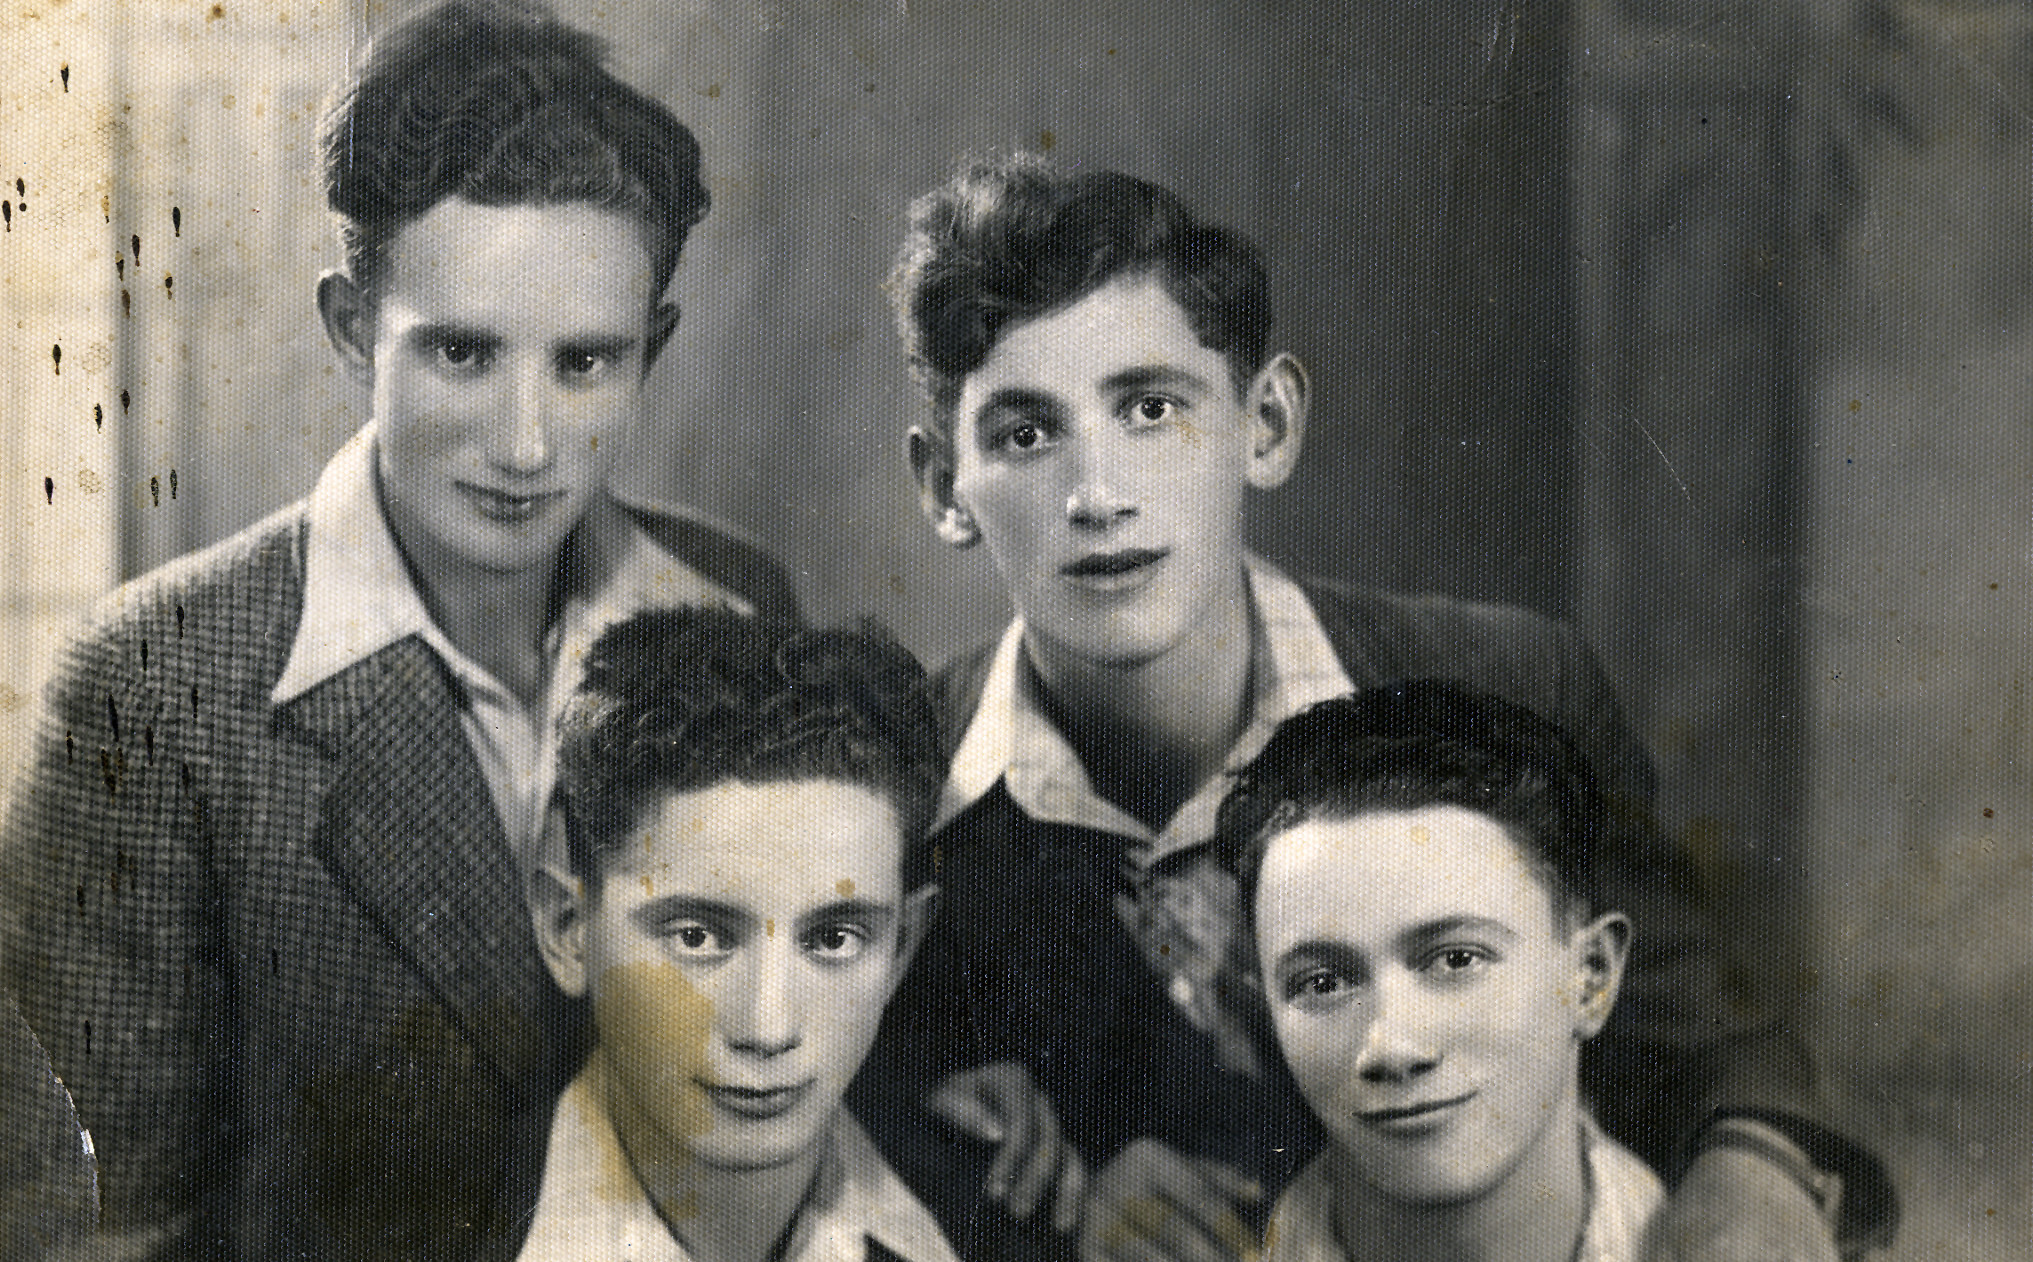 Group portrait of Polish refugees in Vilna.  Pictured are (back row, left to right): Jeszaayahu Kawe and Schlomo Boms, (front row, left to right): Josef and Yitzhack Boms.